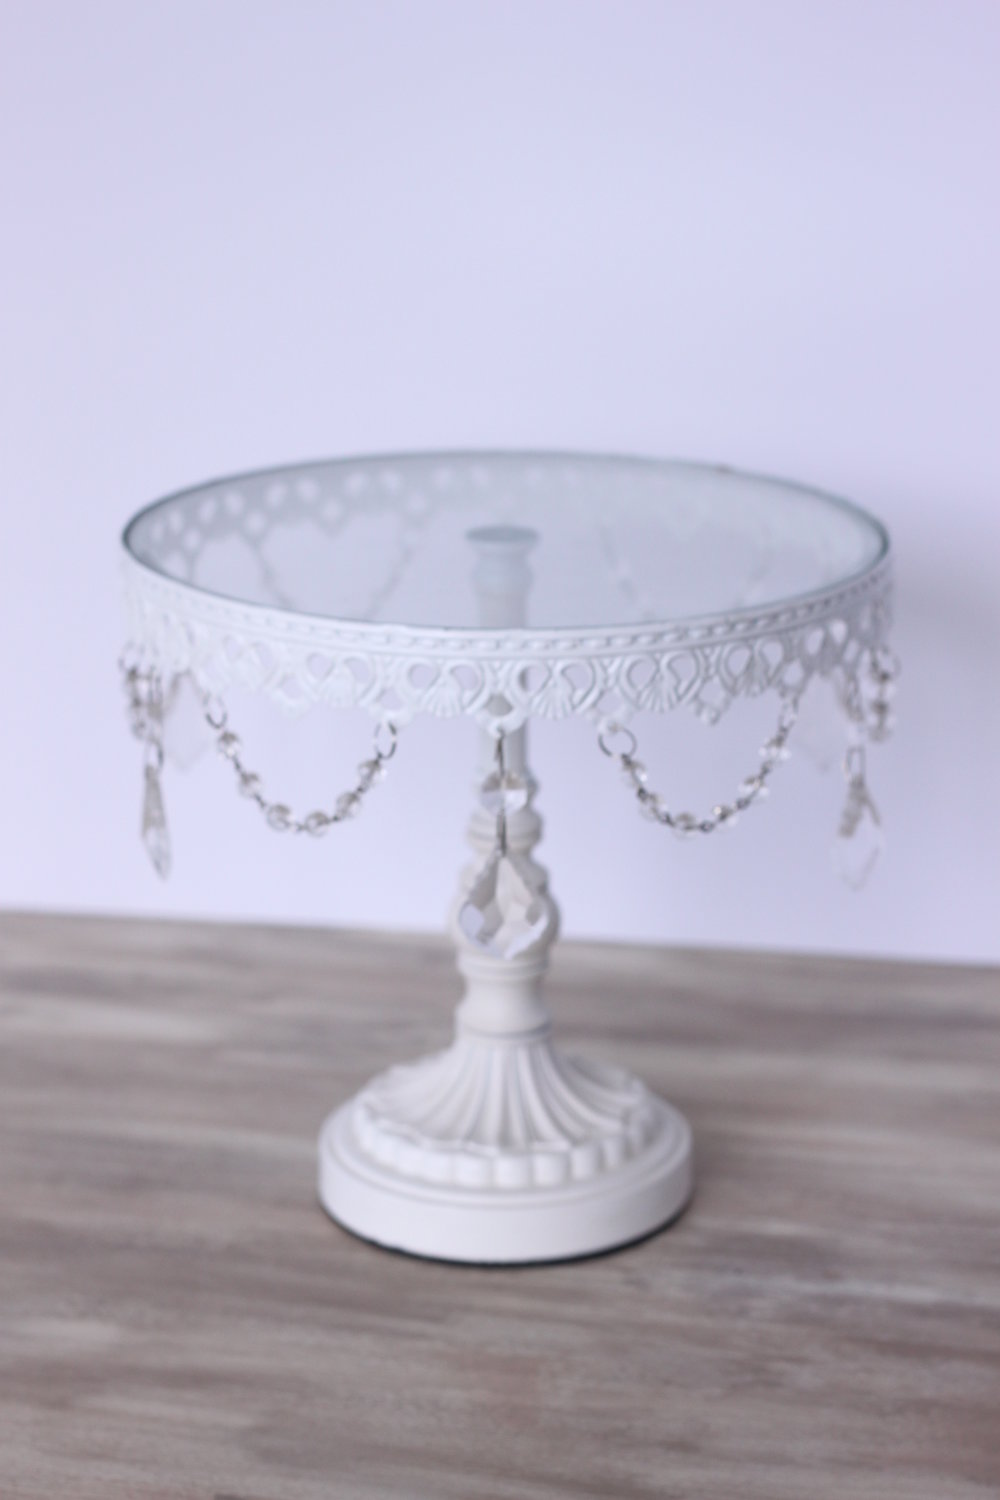 Copy of Rachel Cake Stand Sm. $5 Md. $6 Lrg. $8